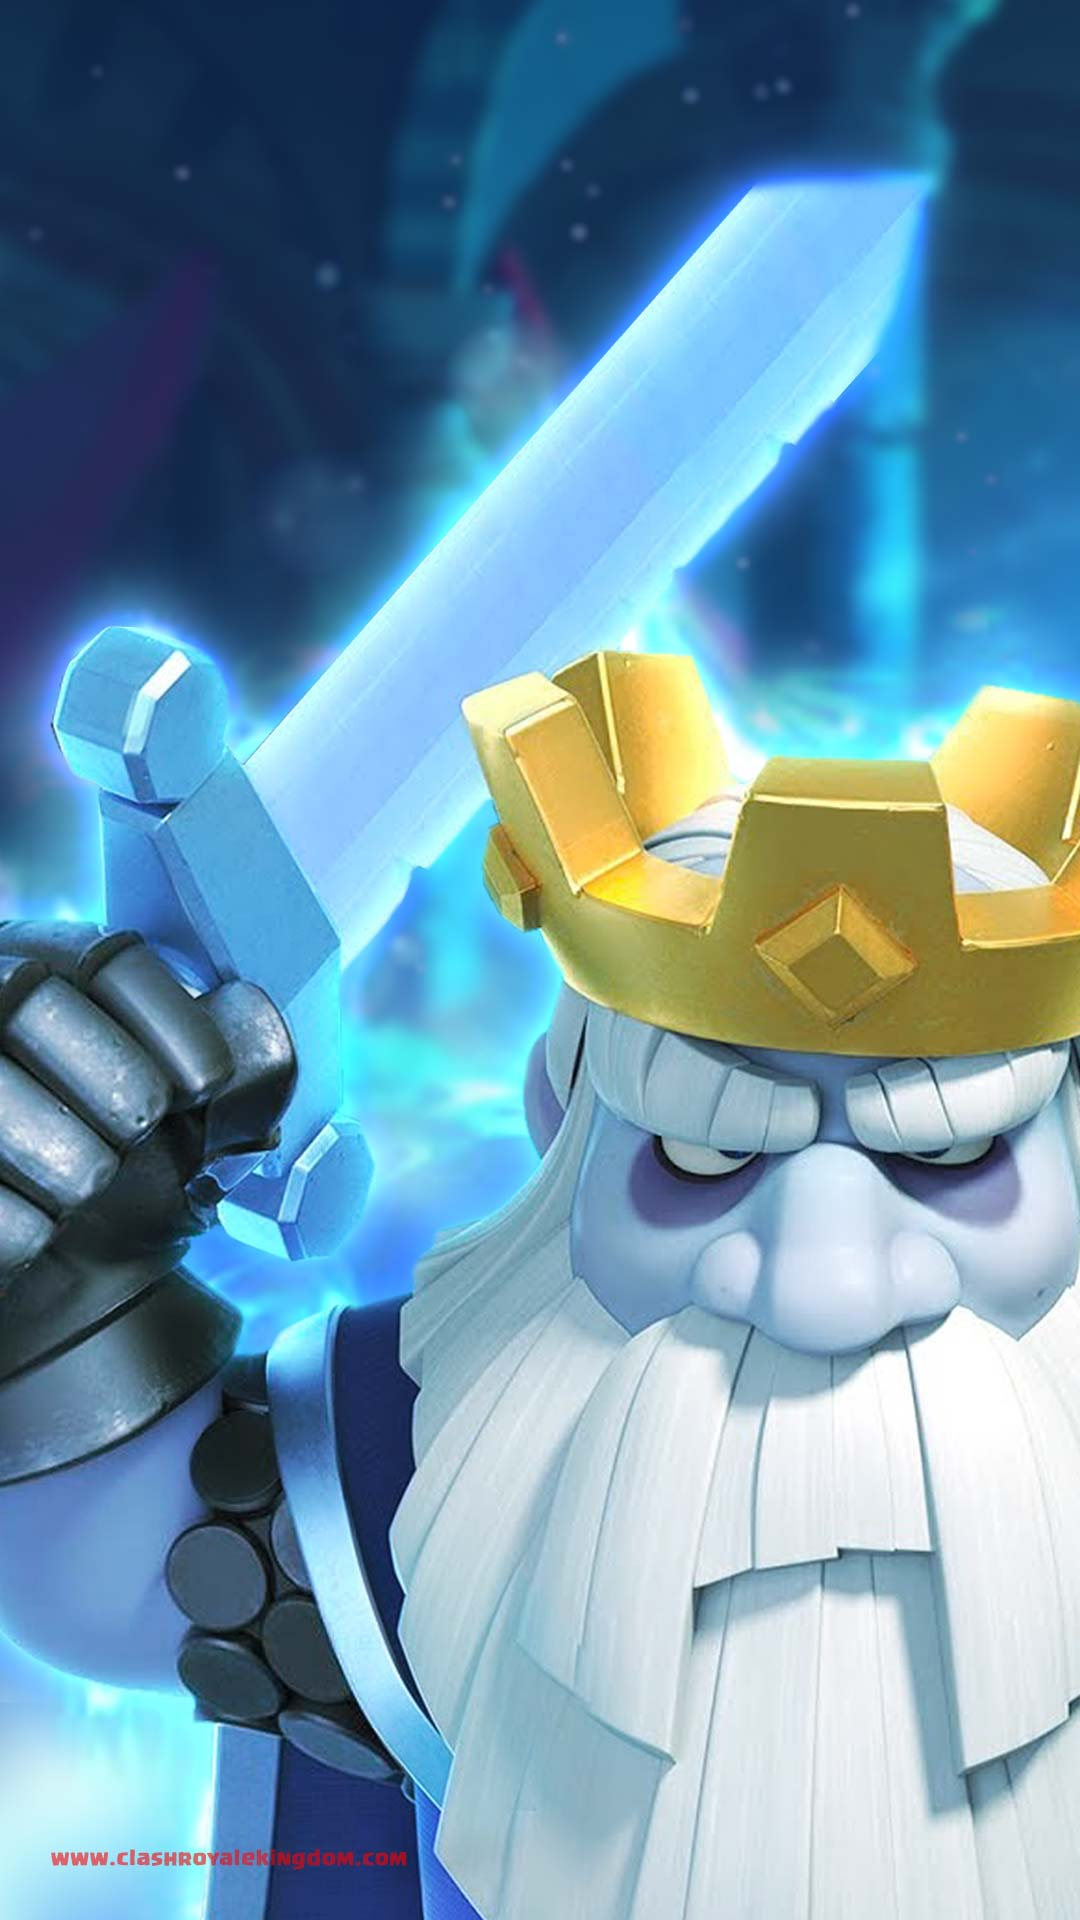 Clash royale wallpaper cave